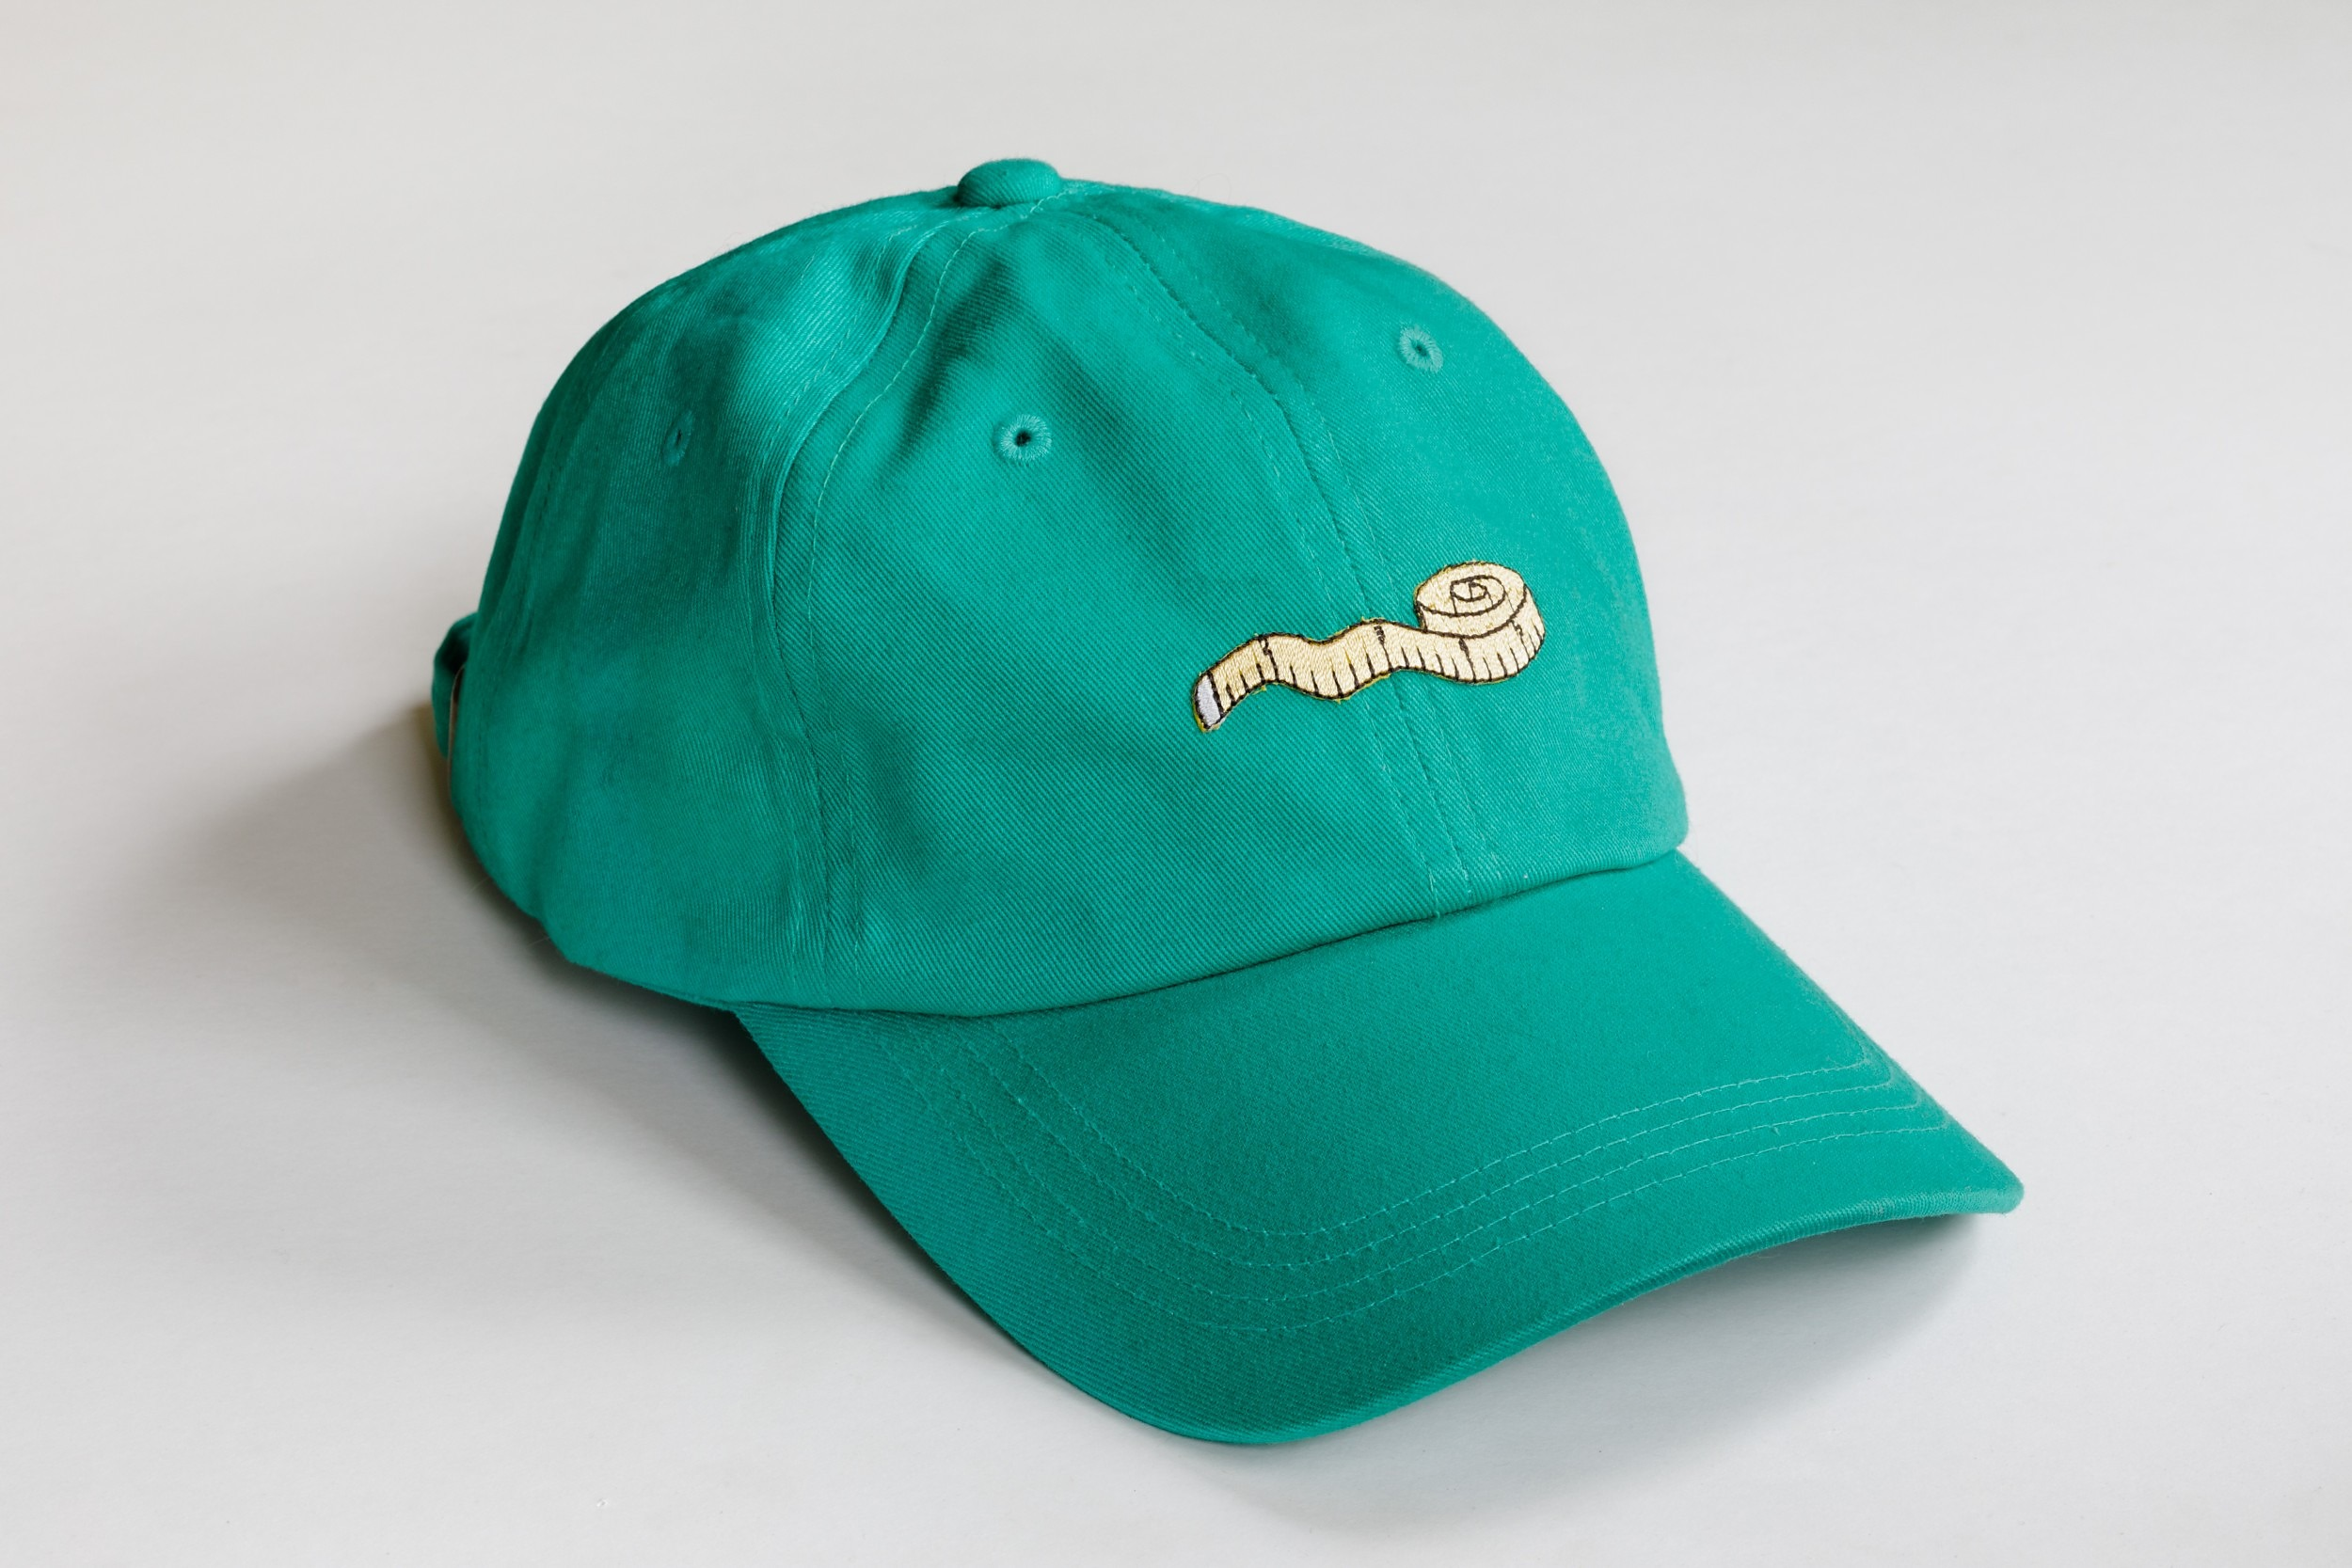 Vita criticata, 2019 Embroidered patch on cotton twill ball cap